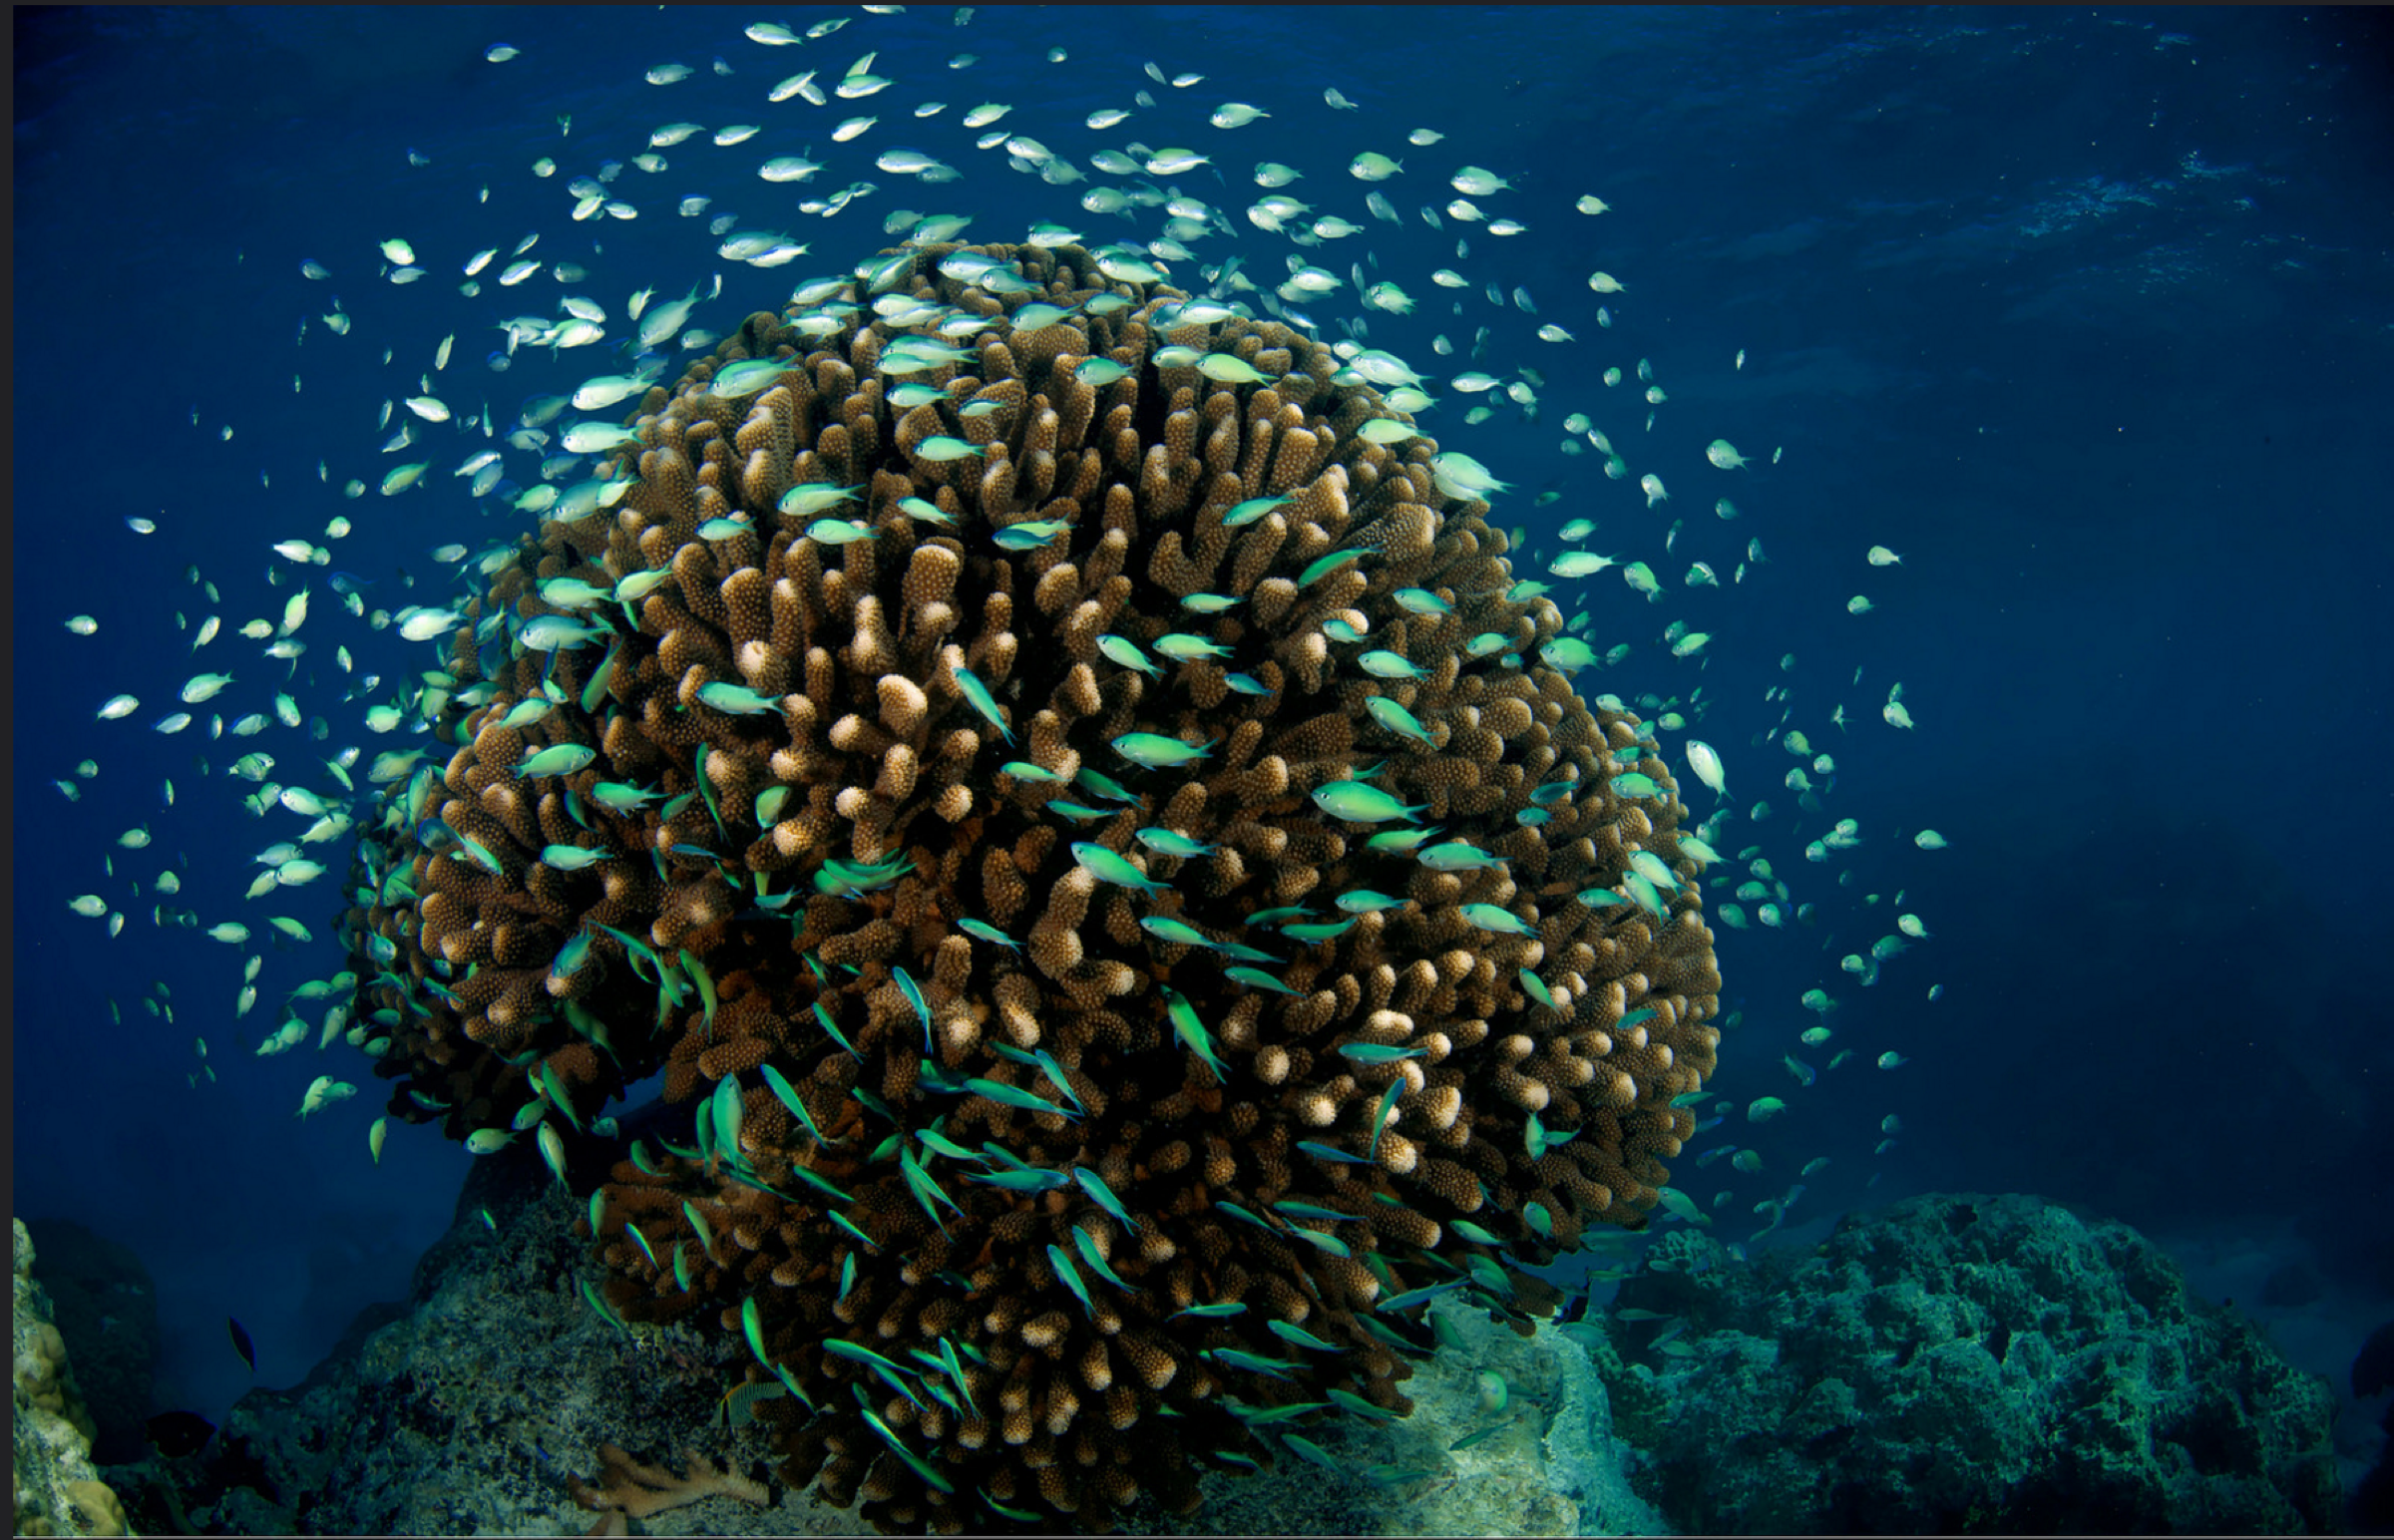 Cauliflower coral (Pocillopora meandrina)—Photograph by Lauric Thiault / TARA Expeditions Foundation